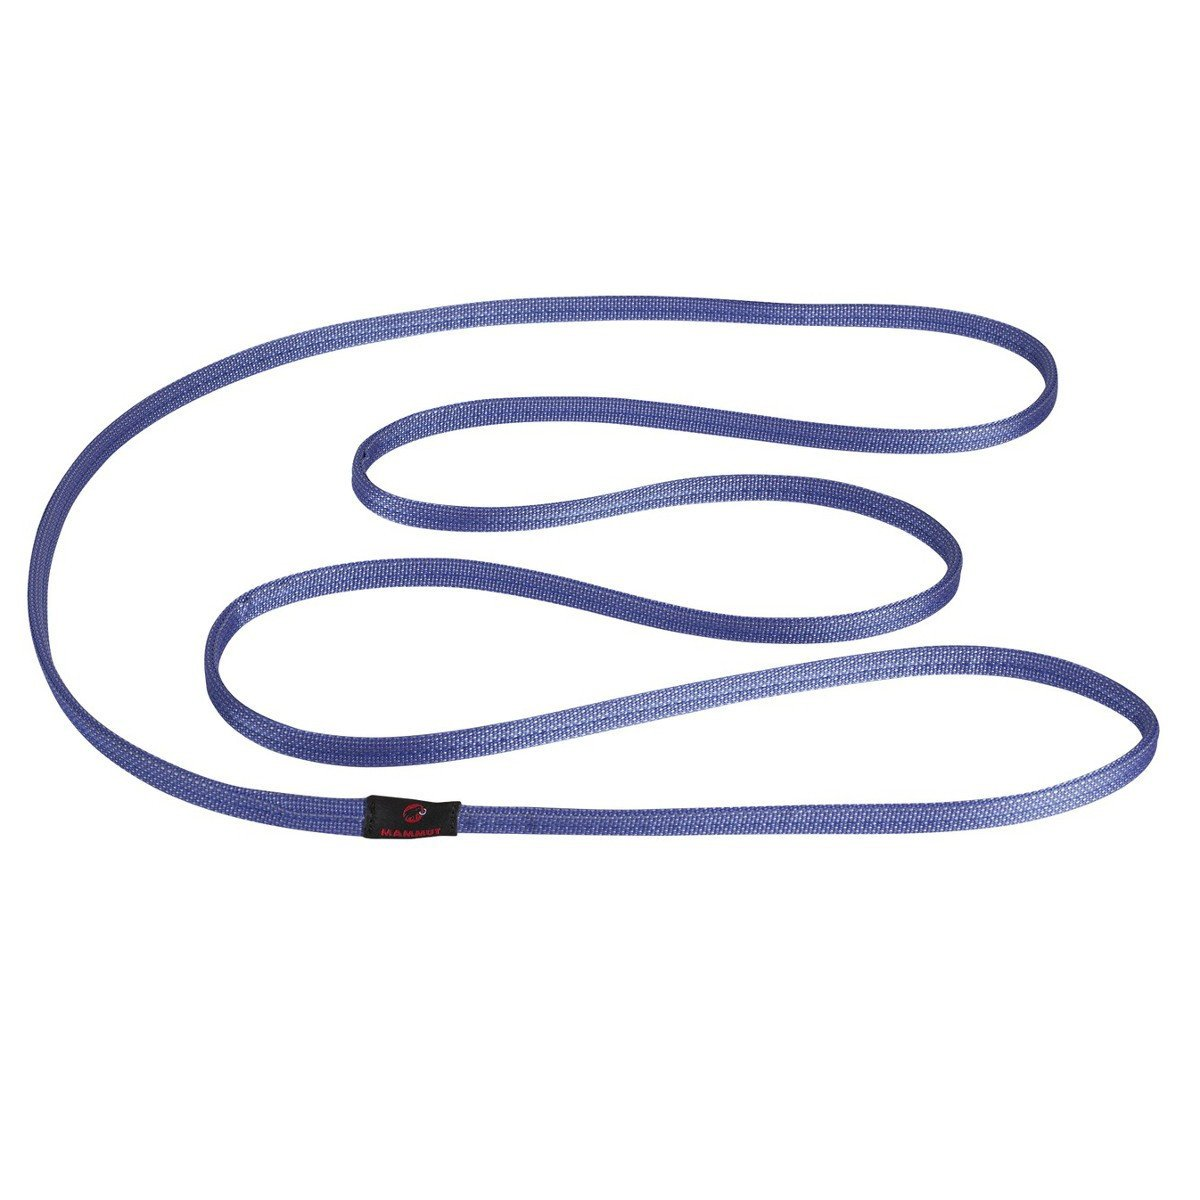 Mammut Magic climbing sling 12mm x 120cm, shown in purple colour